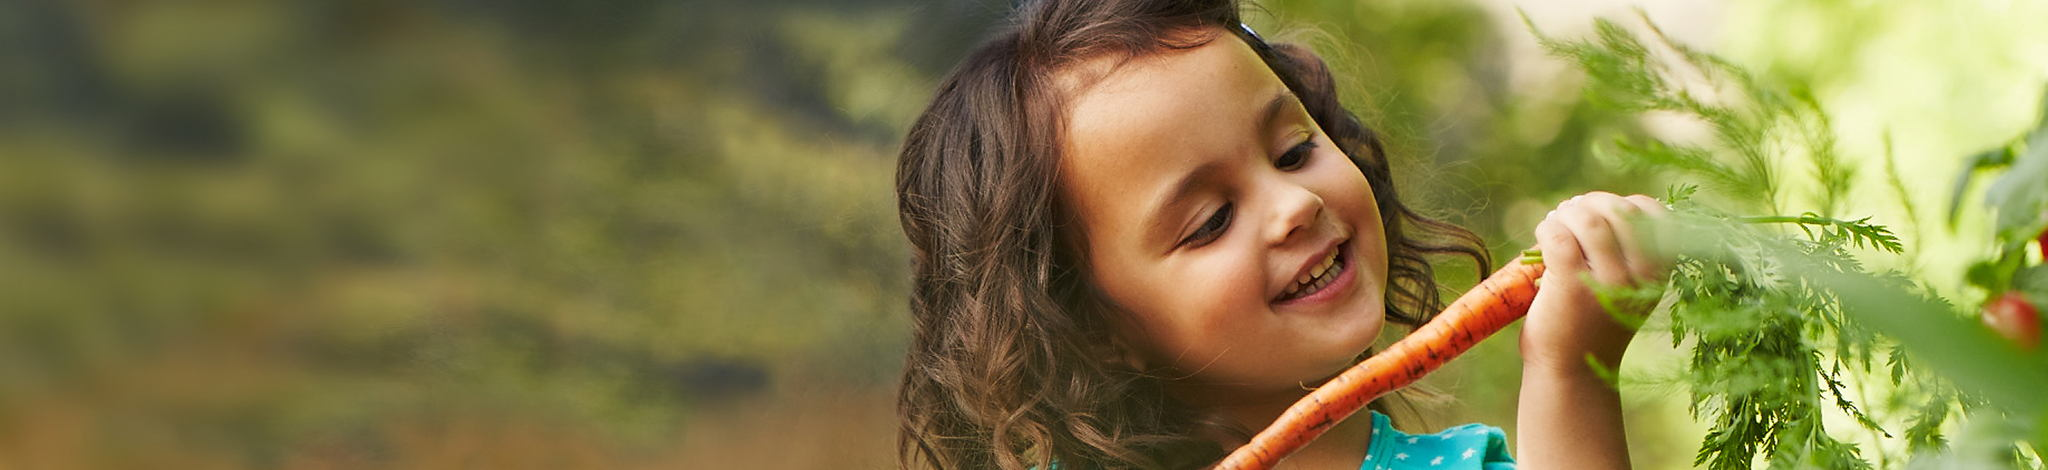 Young Toddler holding carrot